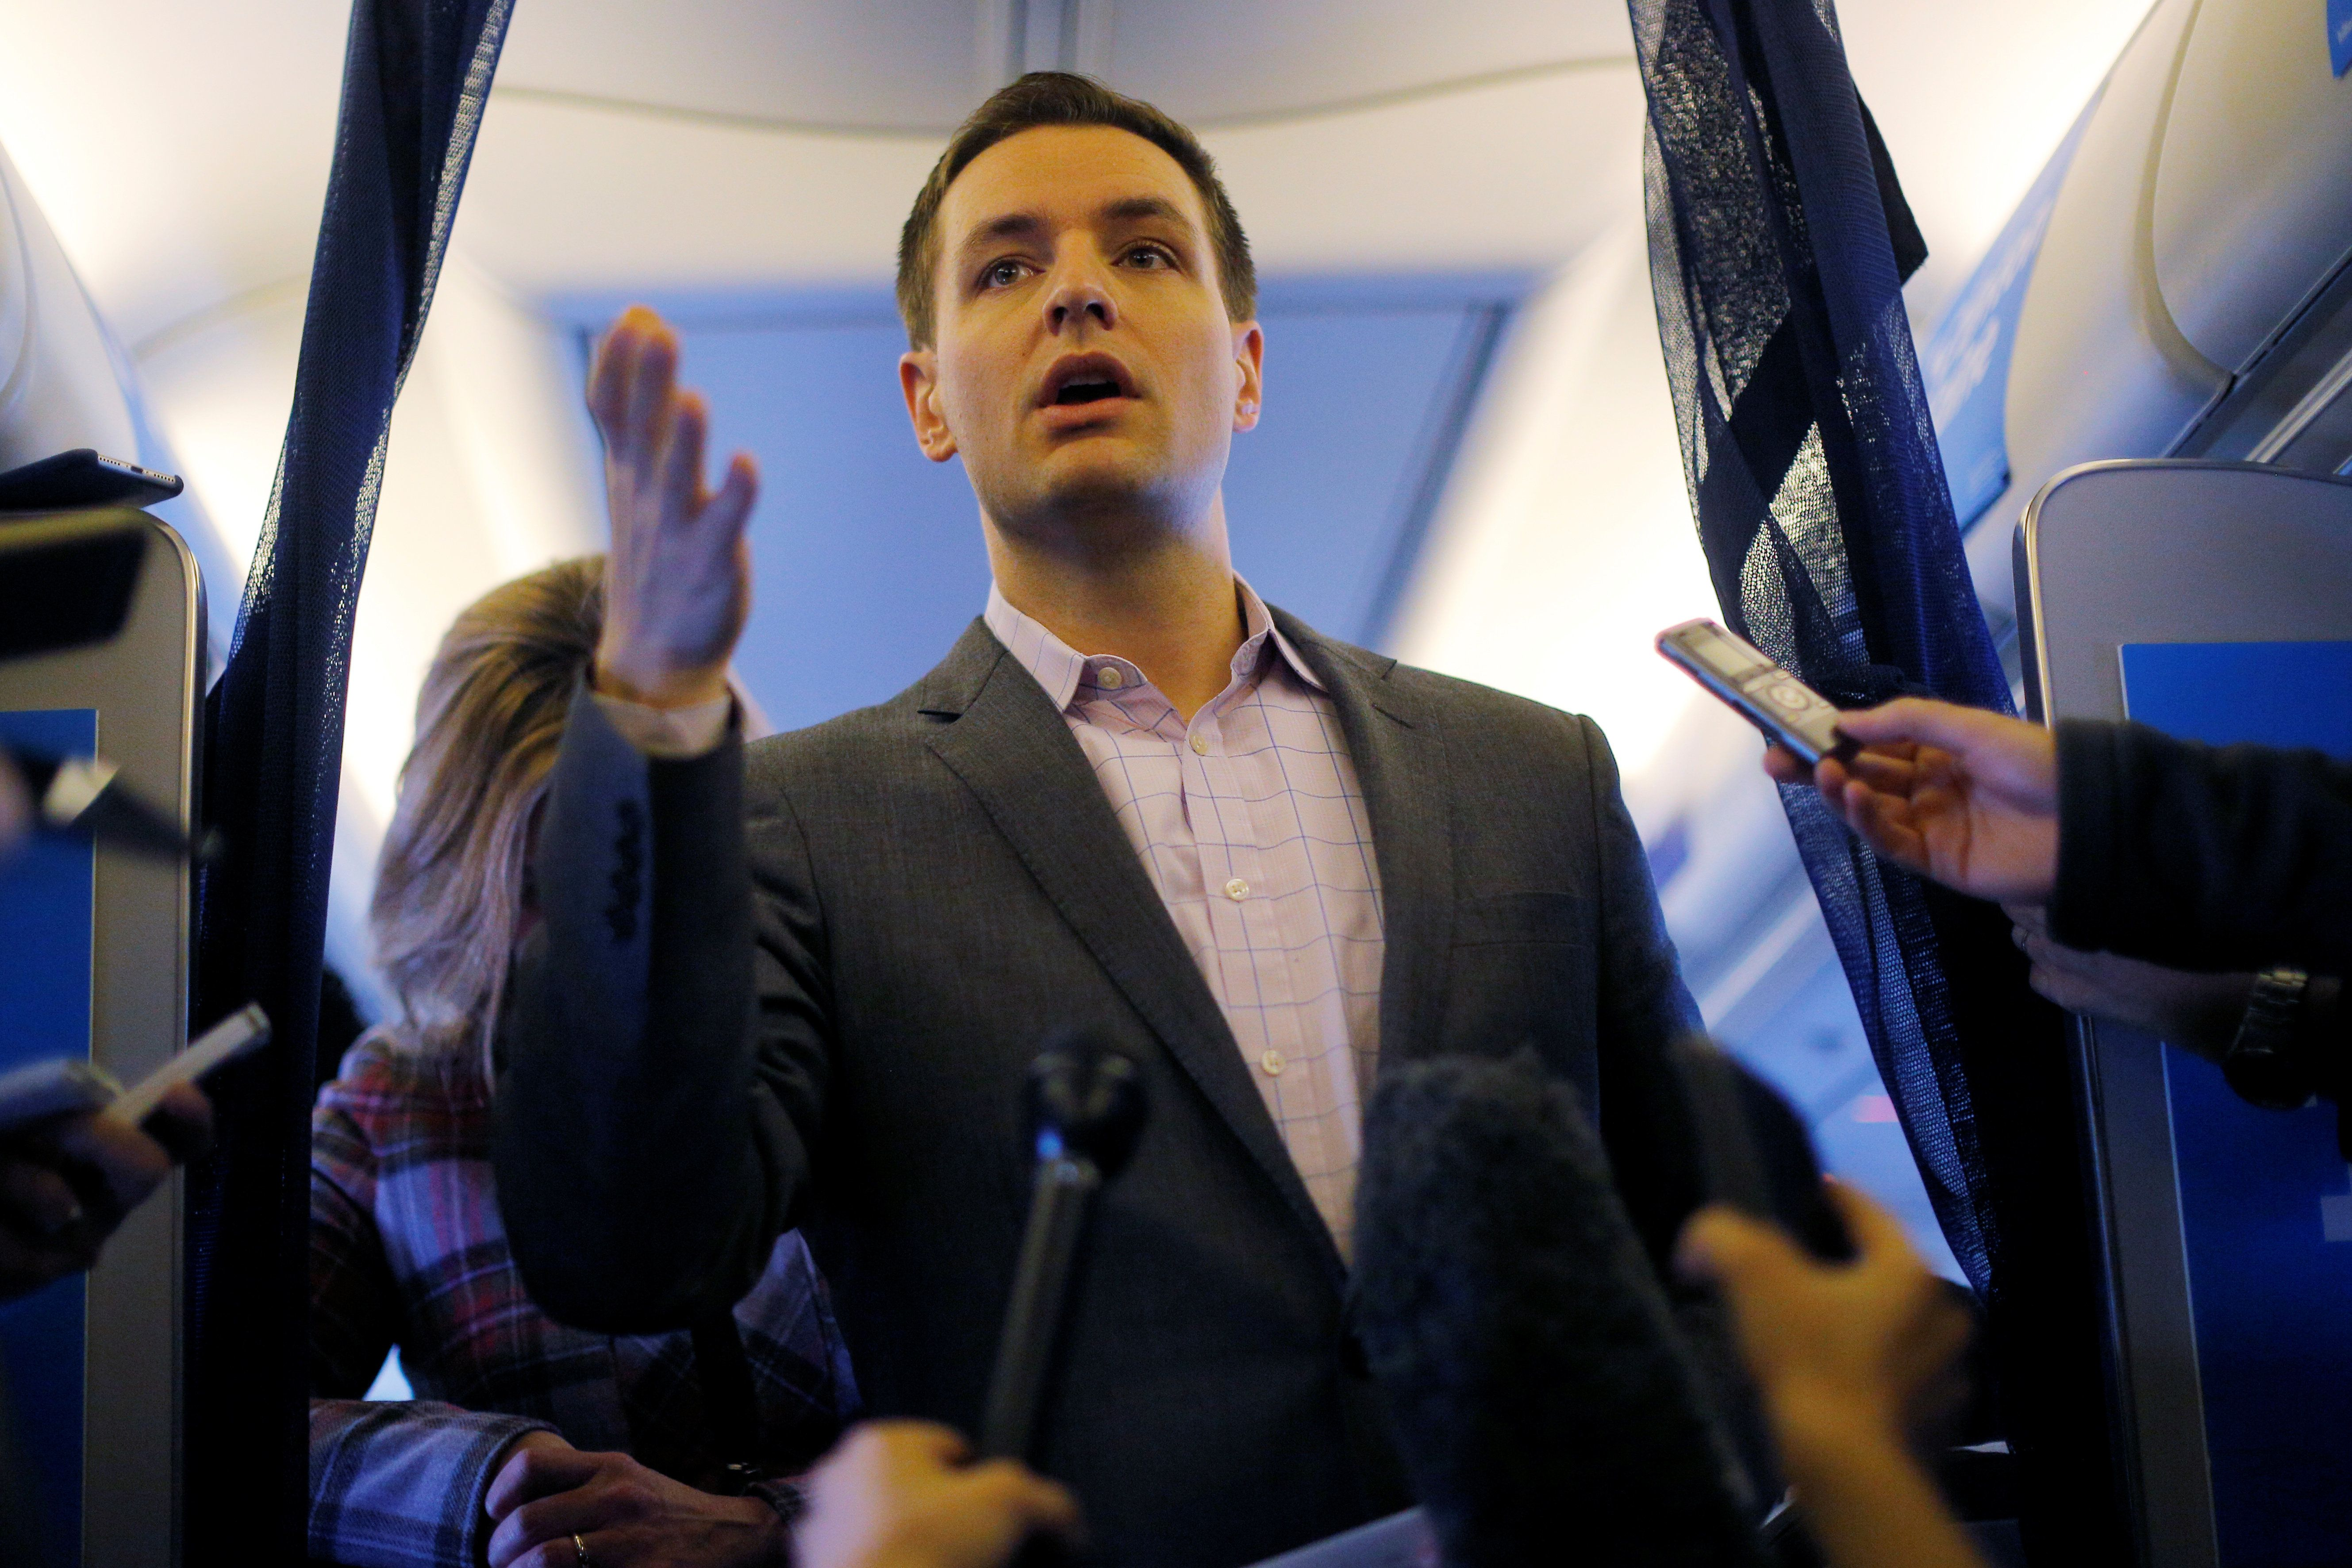 Robby Mook, Campaign Manager for U.S. Democratic presidential nominee Hillary Clinton, talks to reporters onboard the campaign plane enroute to Cedar Rapids, Iowa, U.S. October 28, 2016.  REUTERS/Brian Snyder